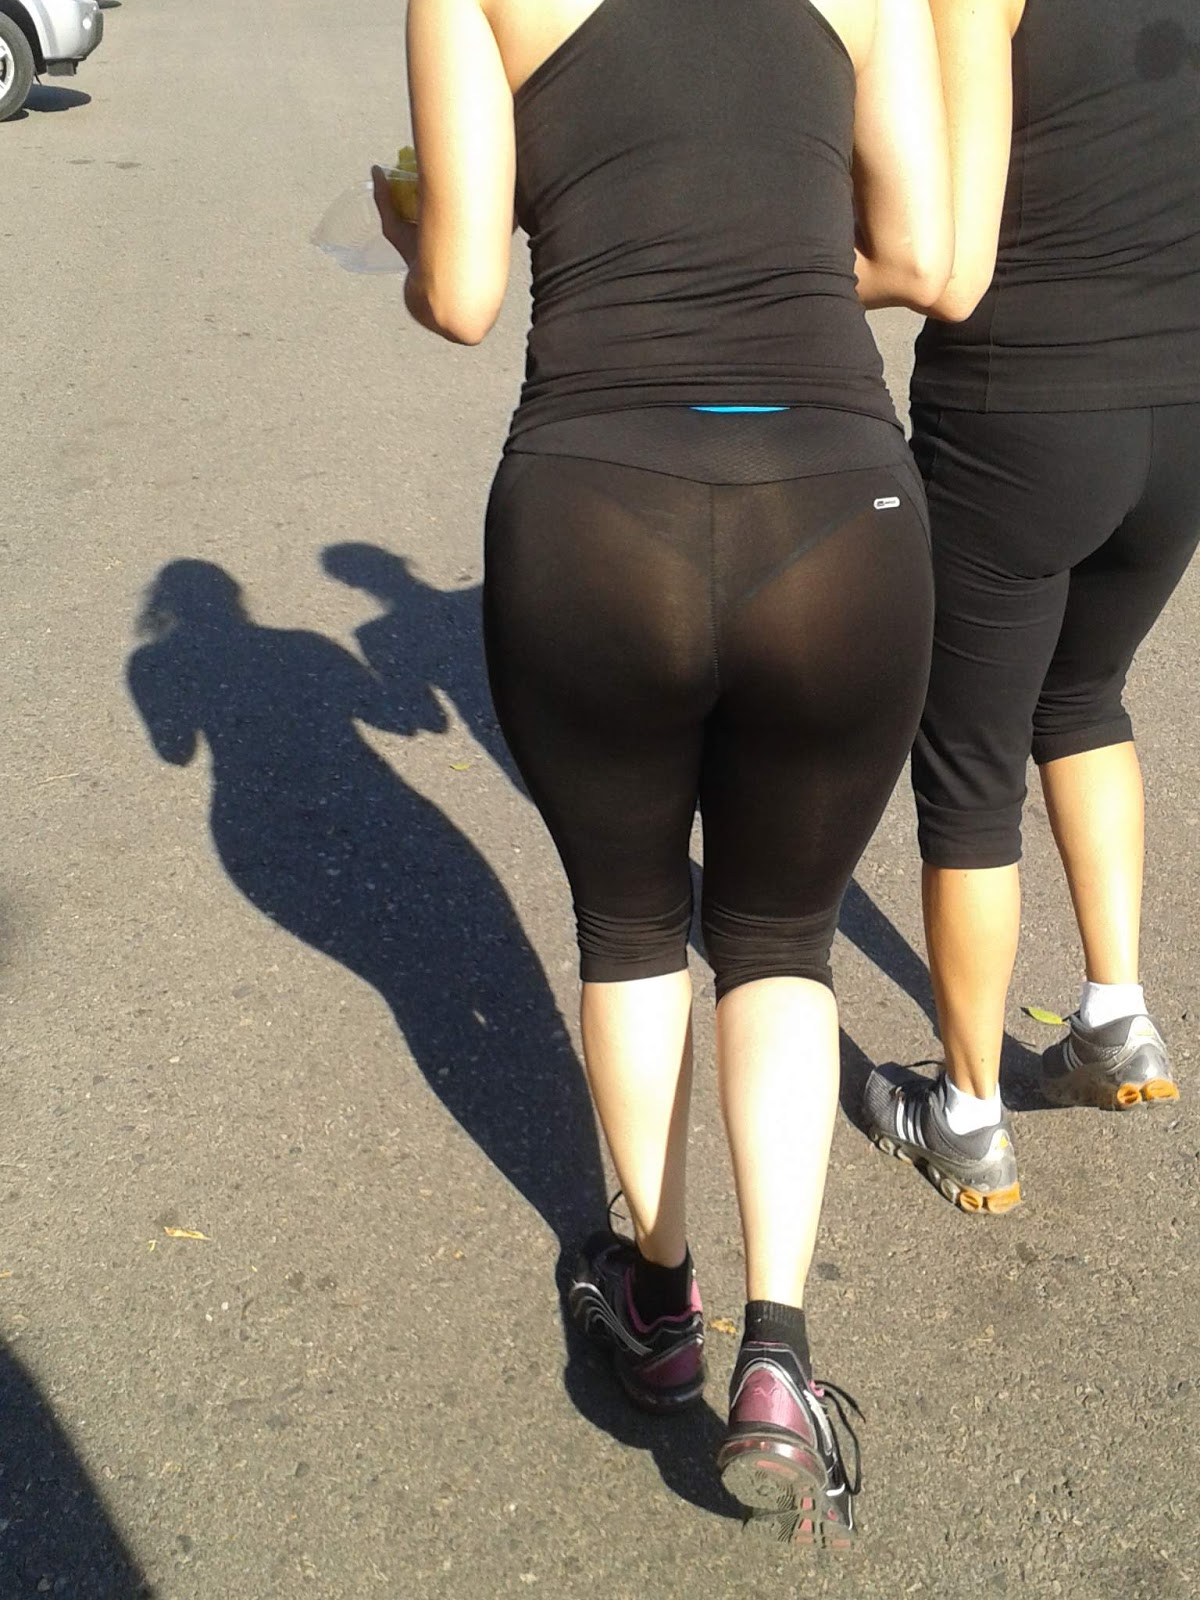 MILF THONG | Tight pants girls - woman in spandex and